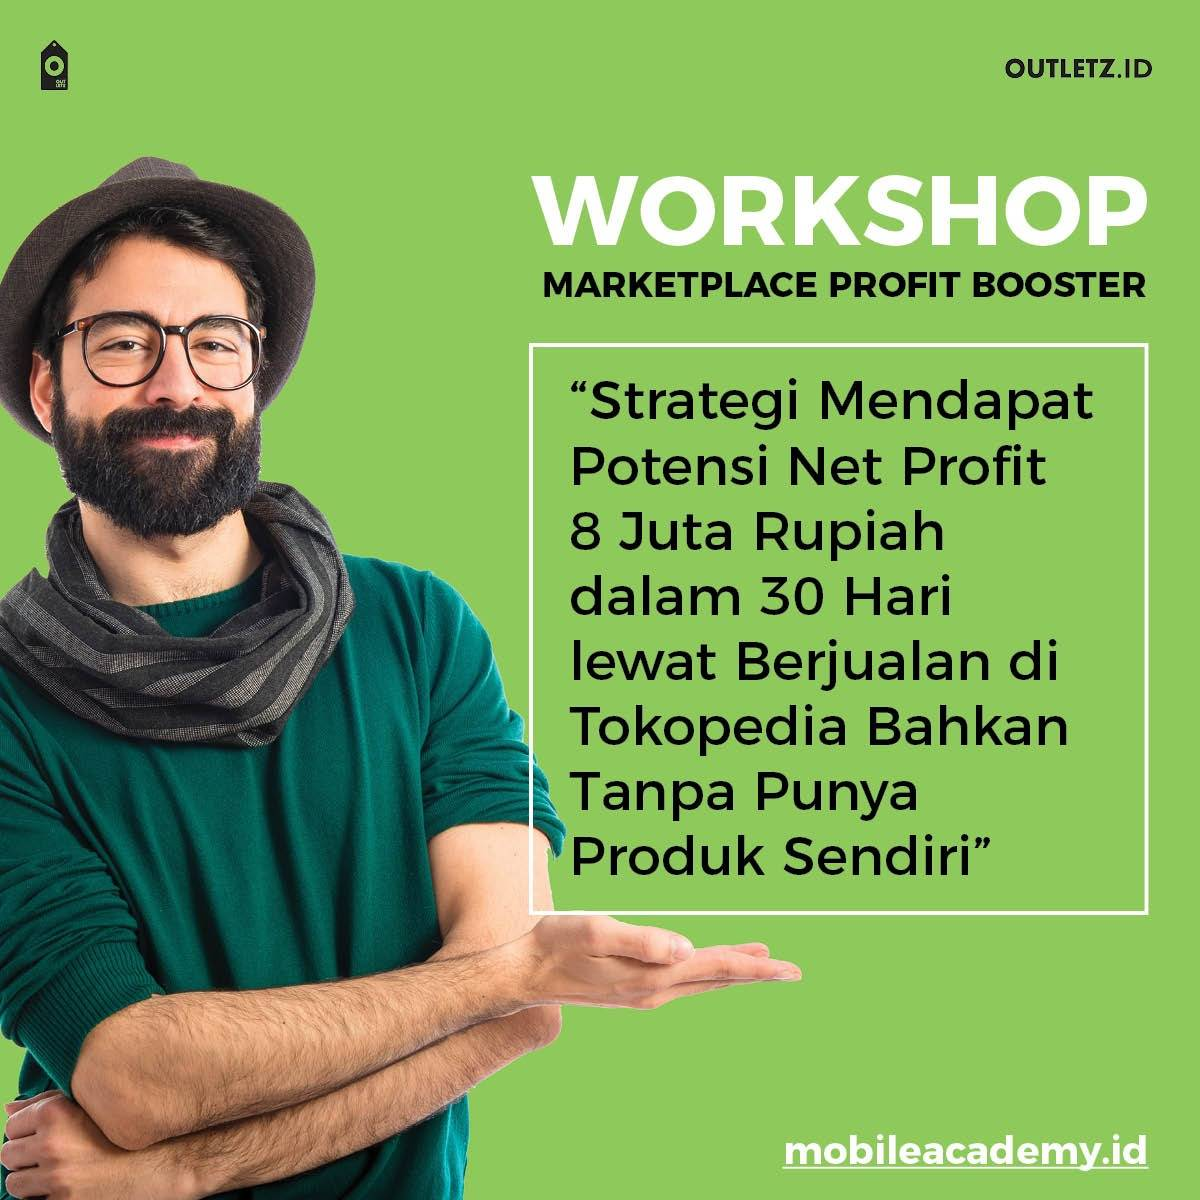 Workshop Marketplace Profit Booster